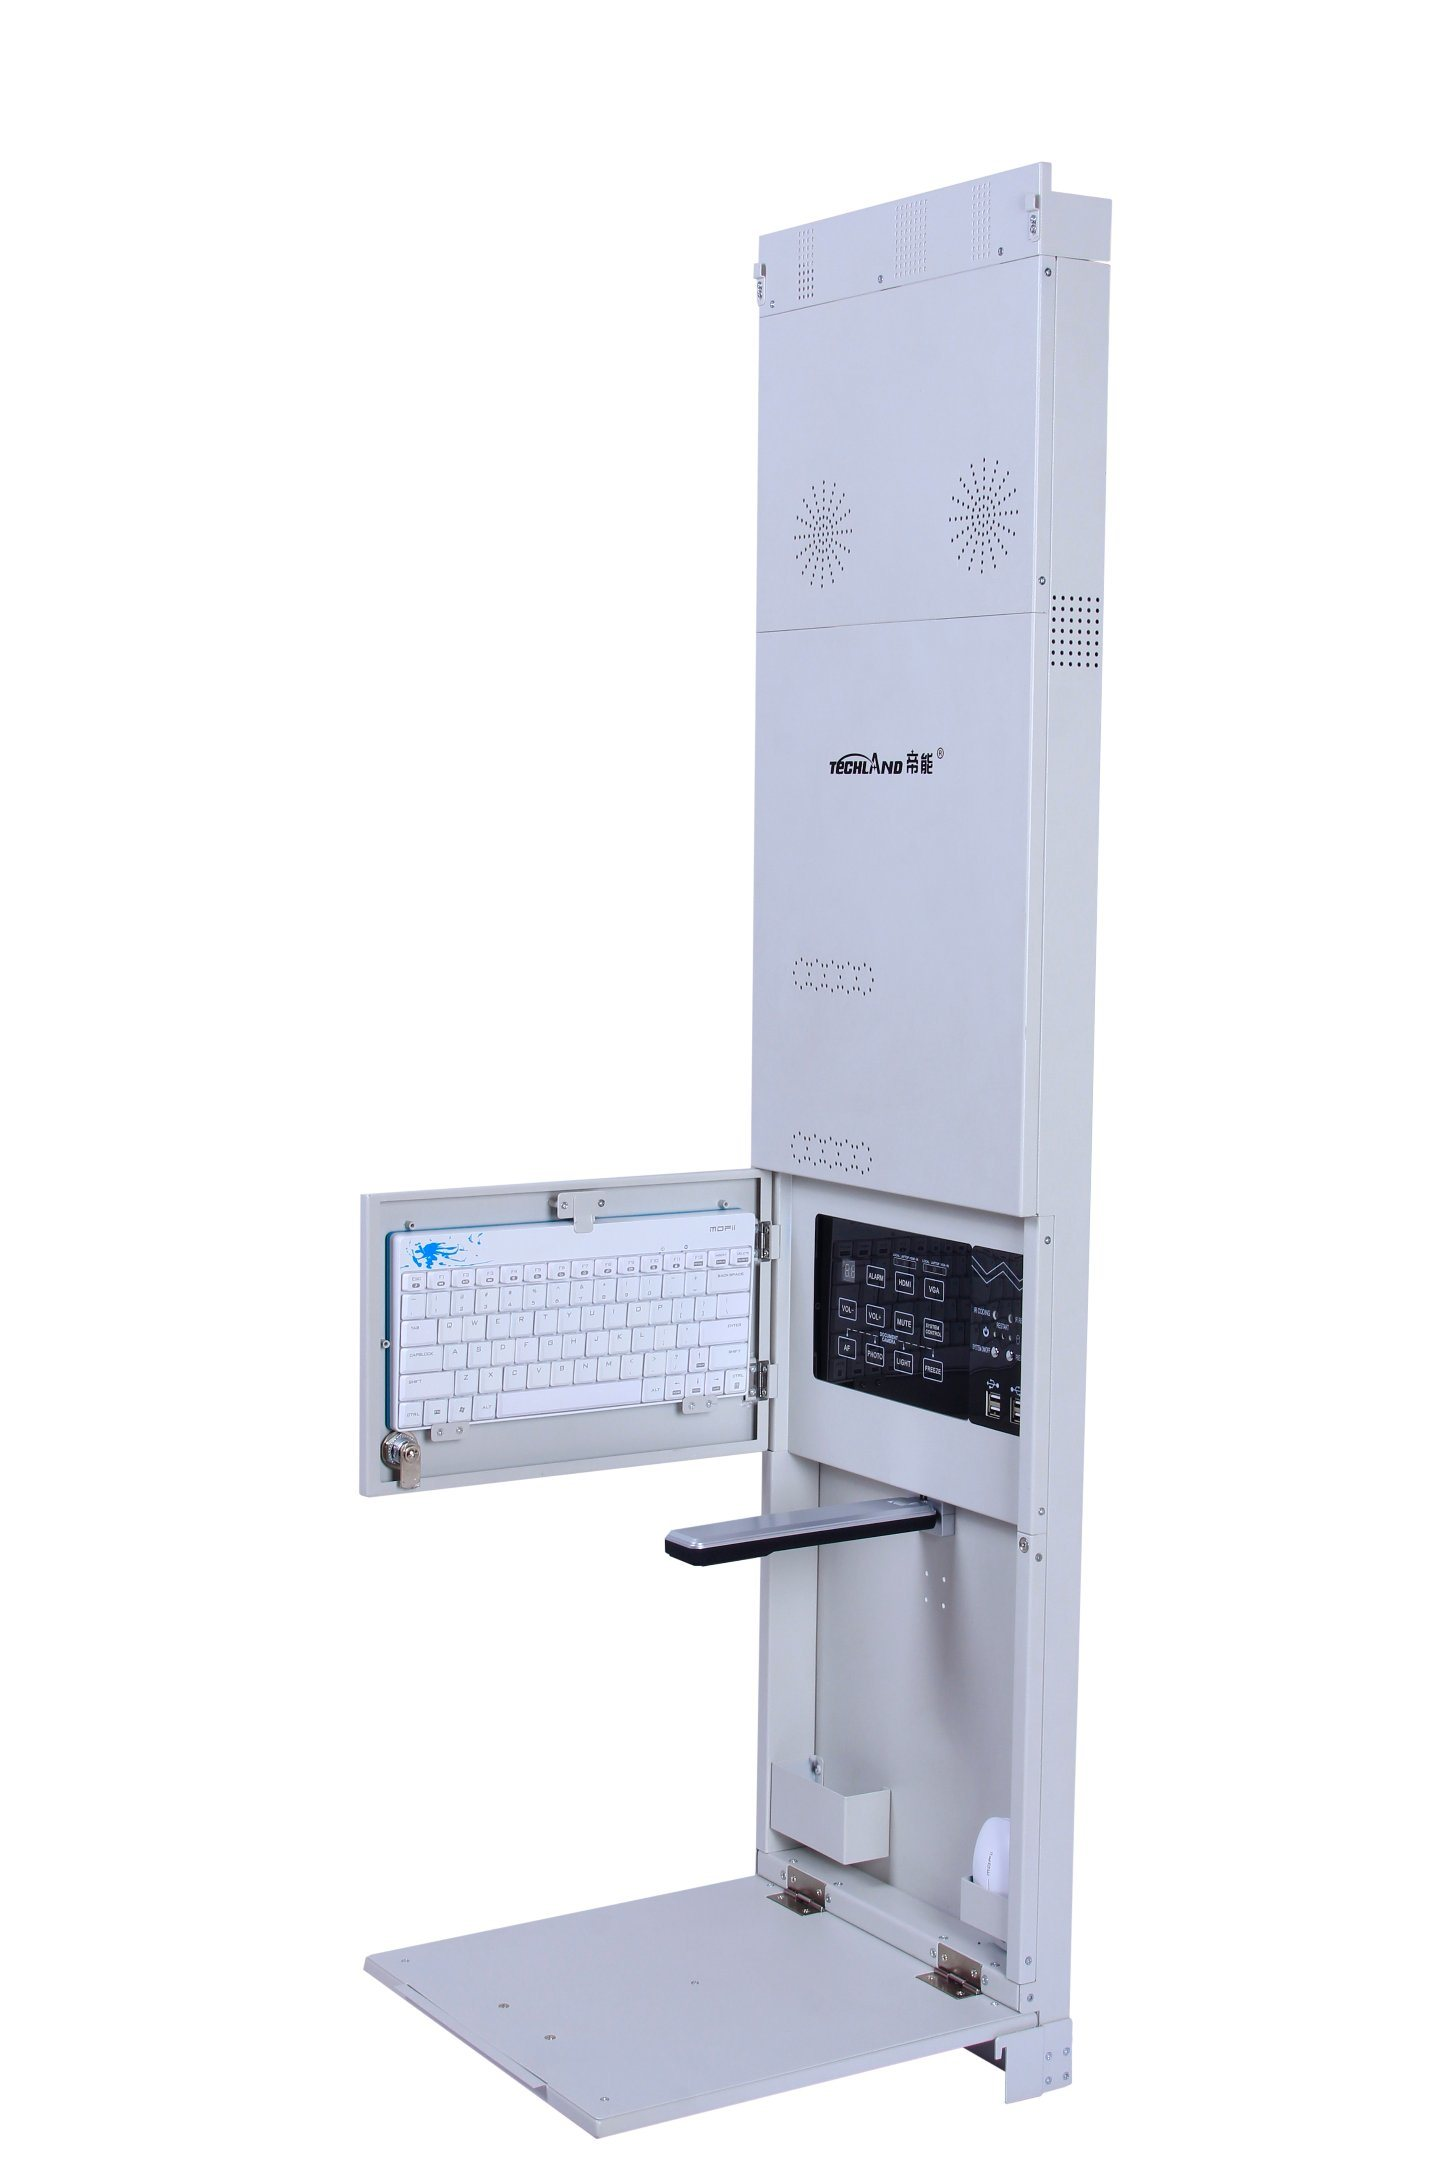 Multi-Media All-in-One PC for Interactive Whiteboard and Projector